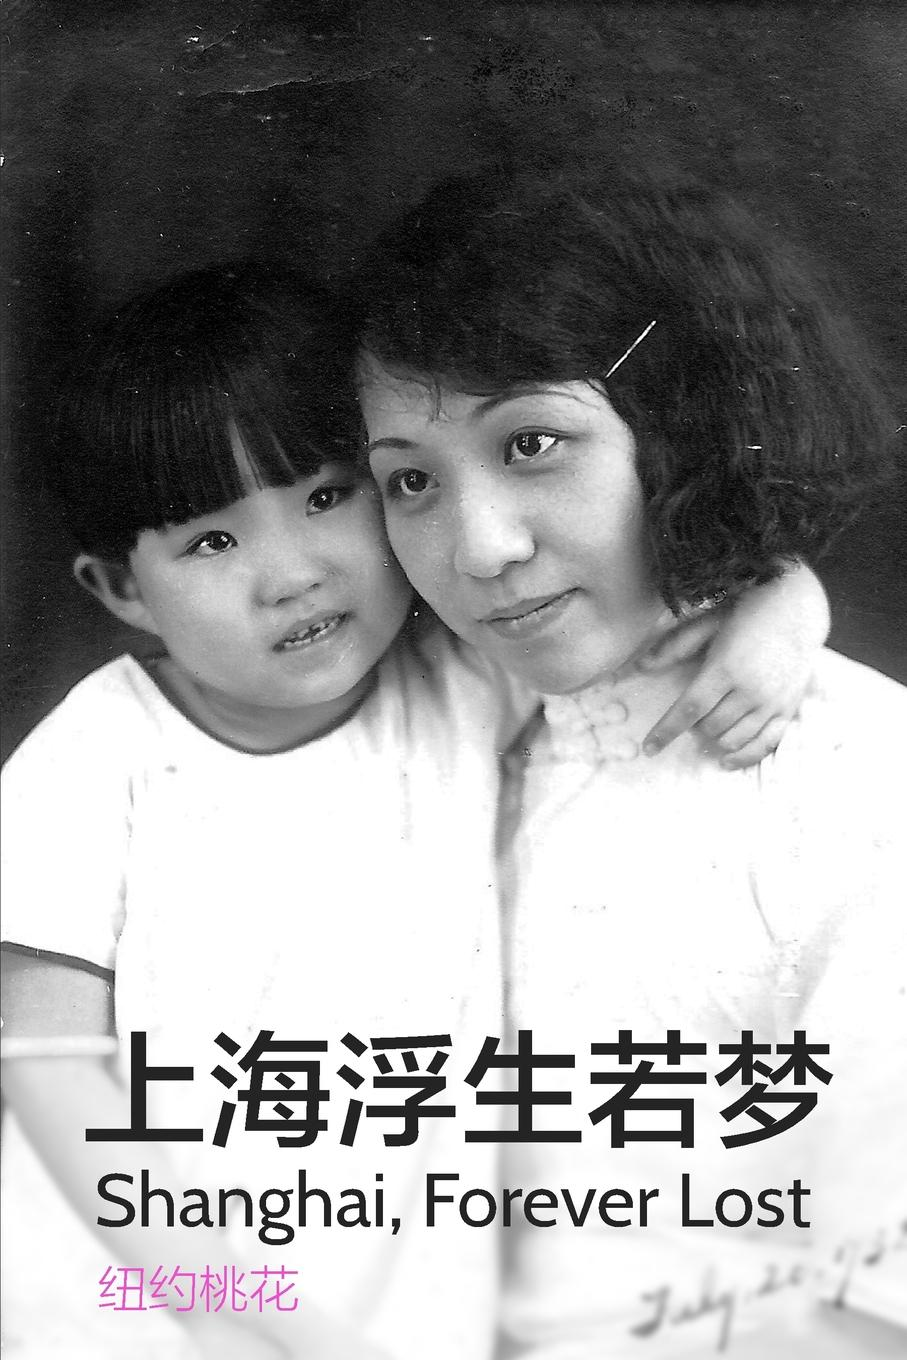 Sonia Hu Shanghai Forever Lost. A Biography of My Grandmother and Mother 健康9元书系列:肾病病人生活一点通